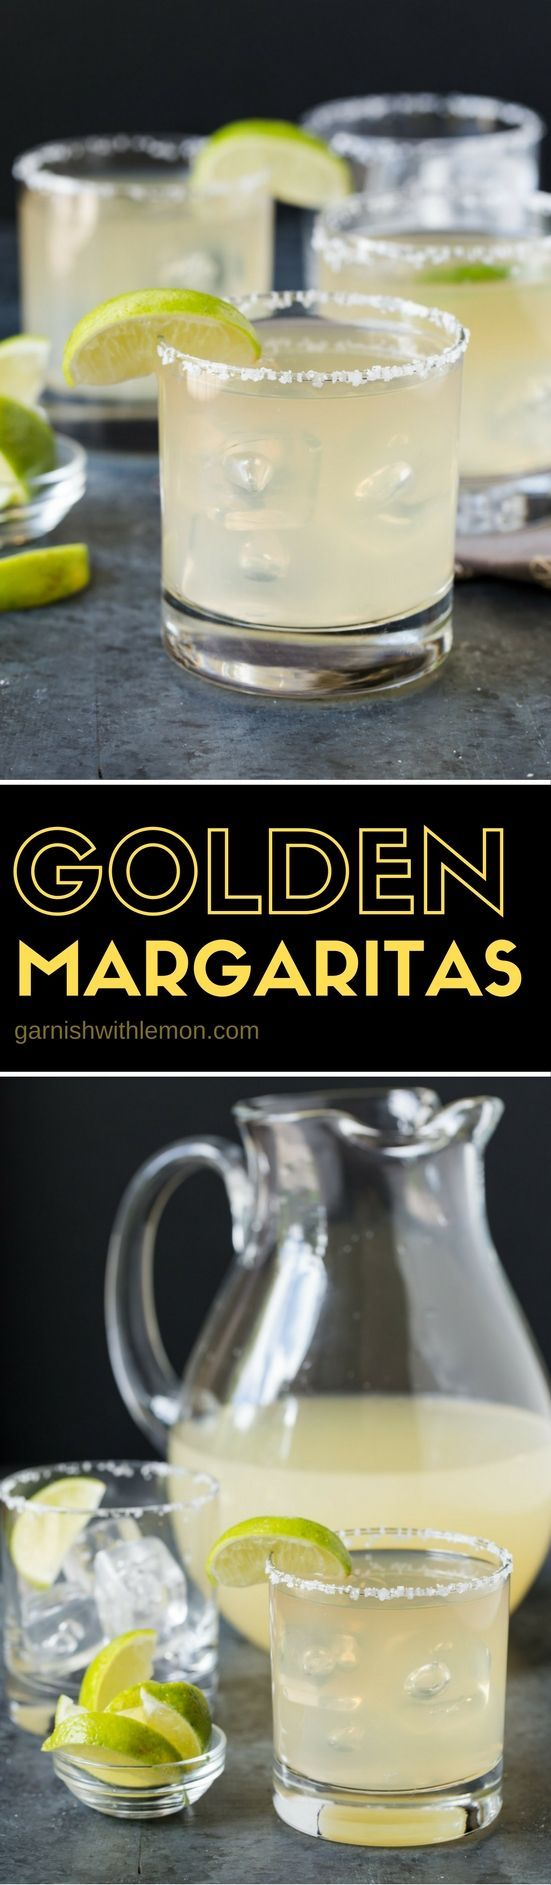 You are only 4 ingredients away from your new favorite Golden Margarita.